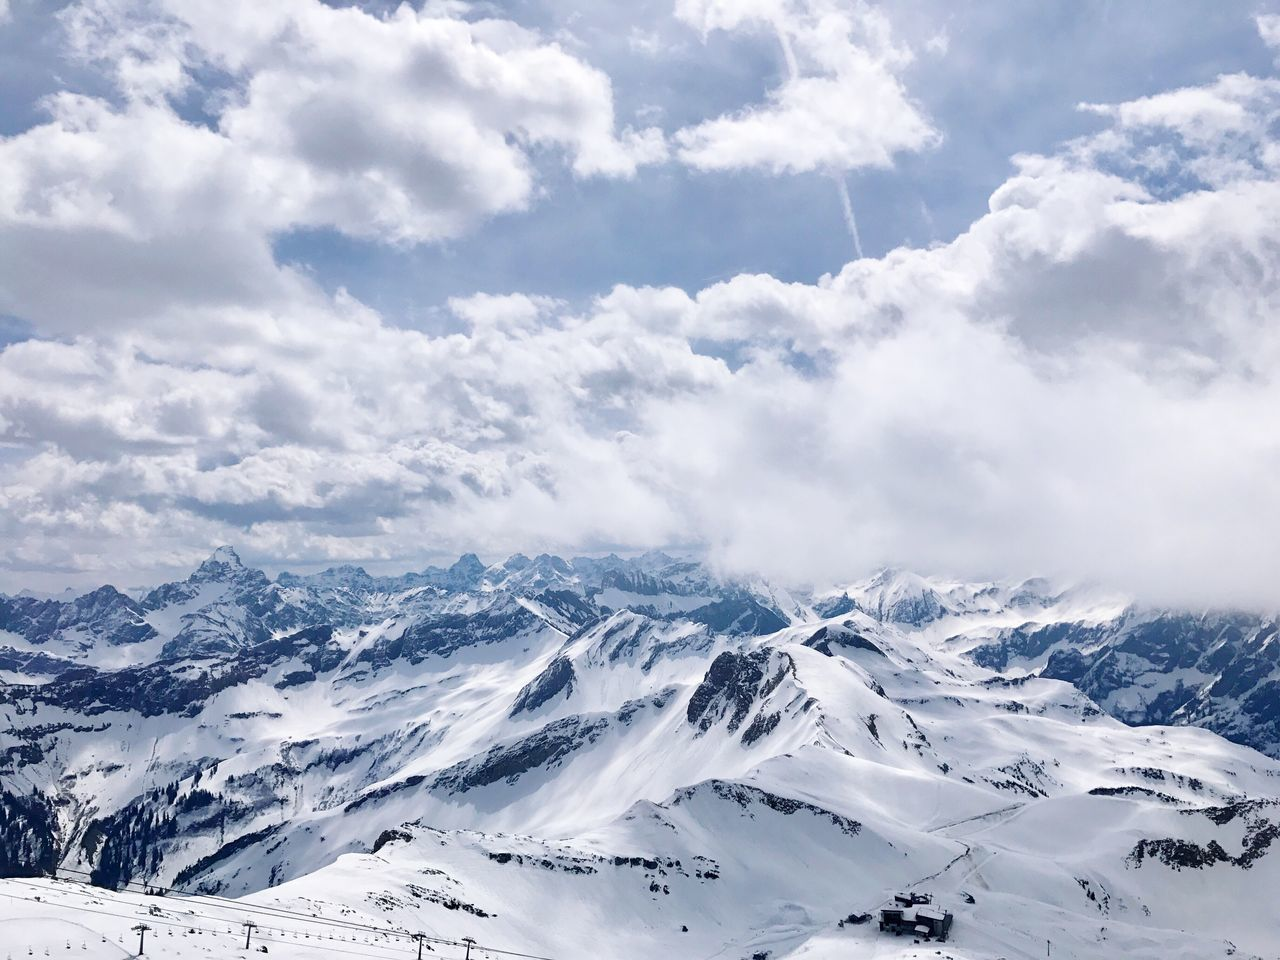 Snow Winter Cold Temperature Beauty In Nature Tranquil Scene Tranquility Scenics Weather Nature Mountain White Color Snowcapped Mountain Cloud - Sky Majestic Day Idyllic Sky Mountain Range Landscape Outdoors Nebelhorn The Great Outdoors - 2017 EyeEm Awards